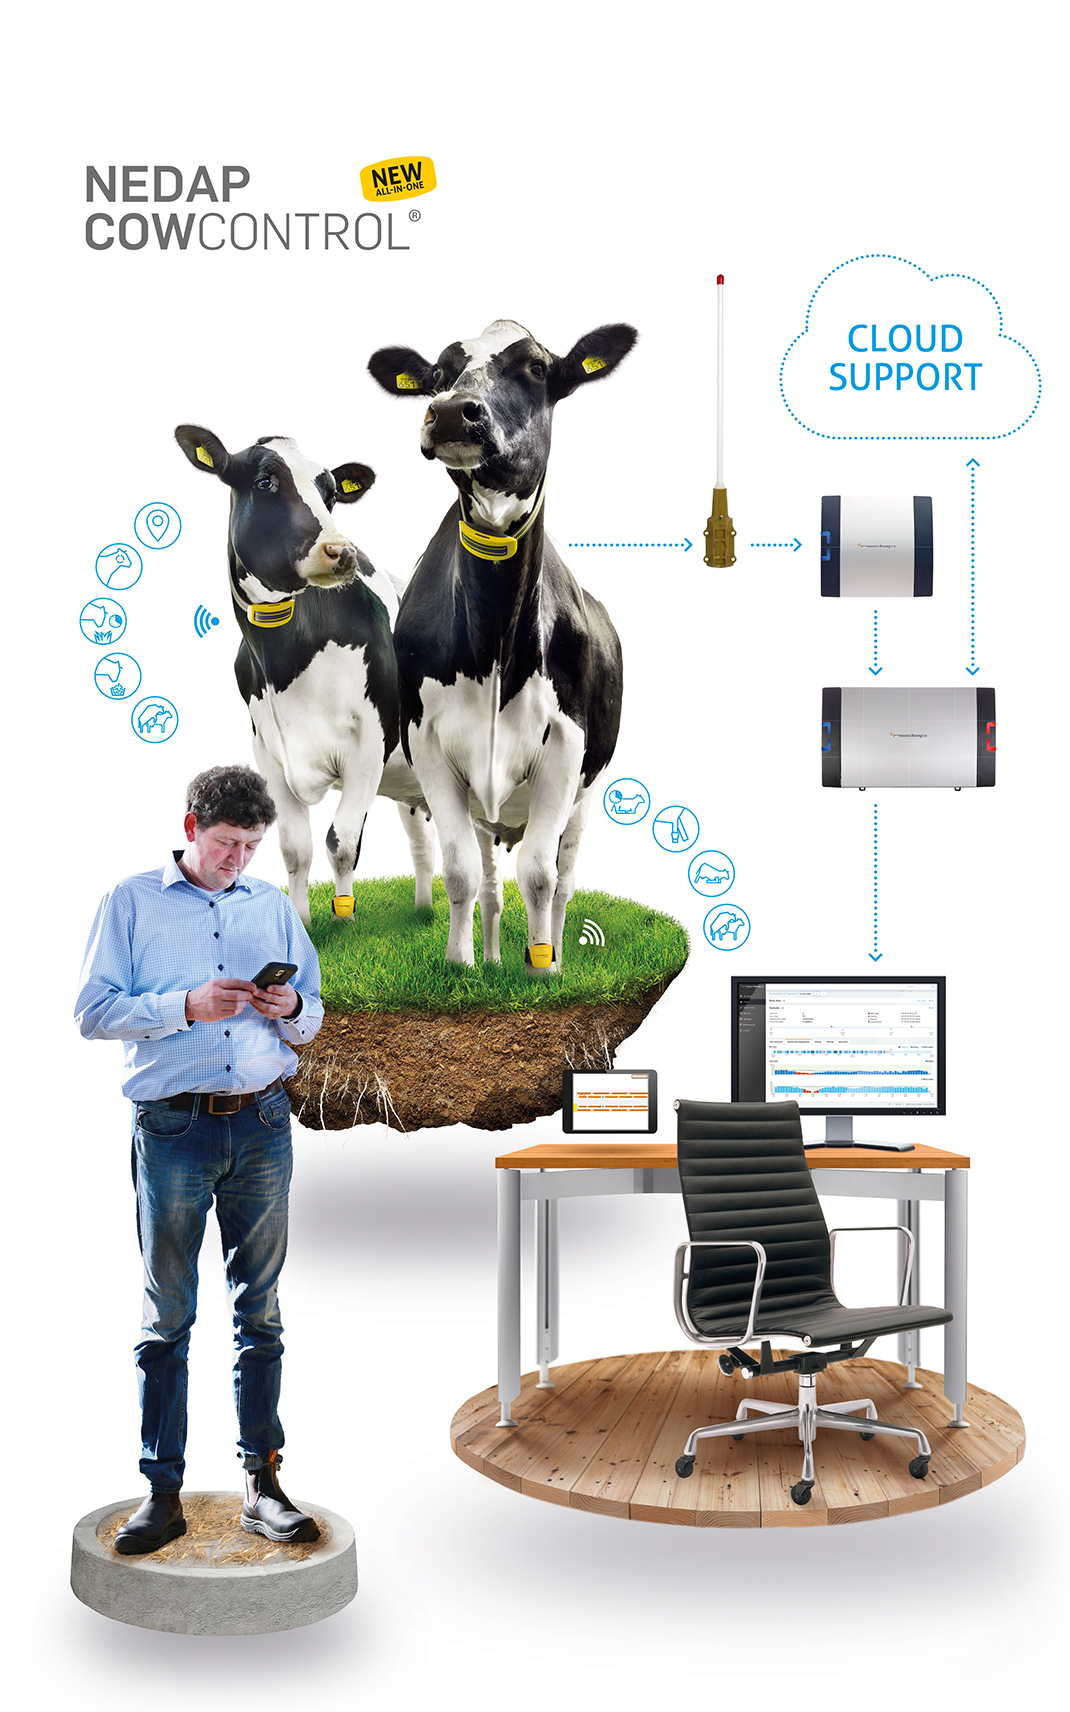 Nedap COWcontrol - Know your cow - Control your herd